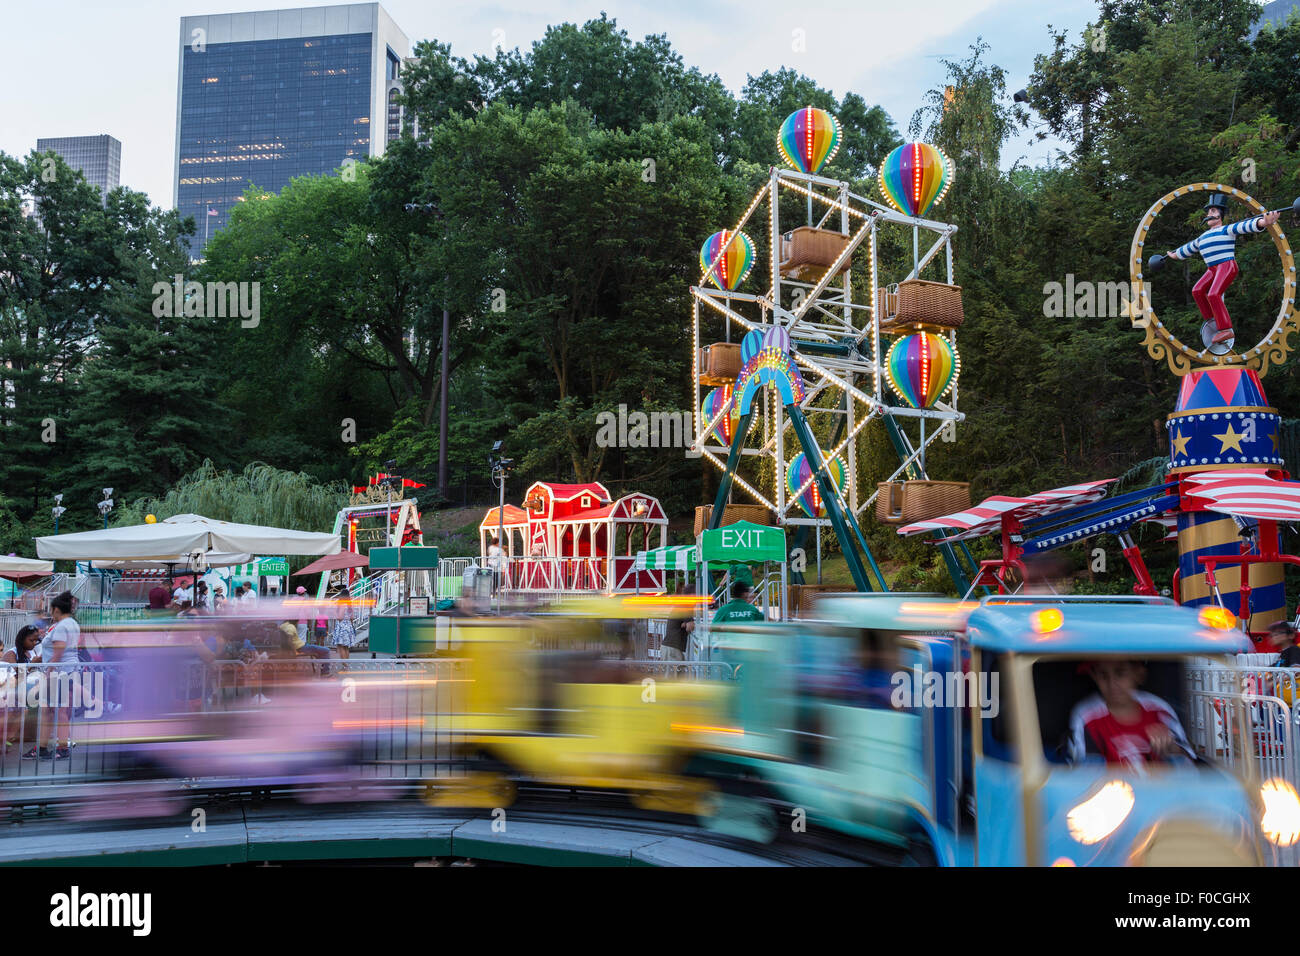 Victorian Gardens Carnival Rides In Central Park With Skyline In Stock Photo 86328310 Alamy